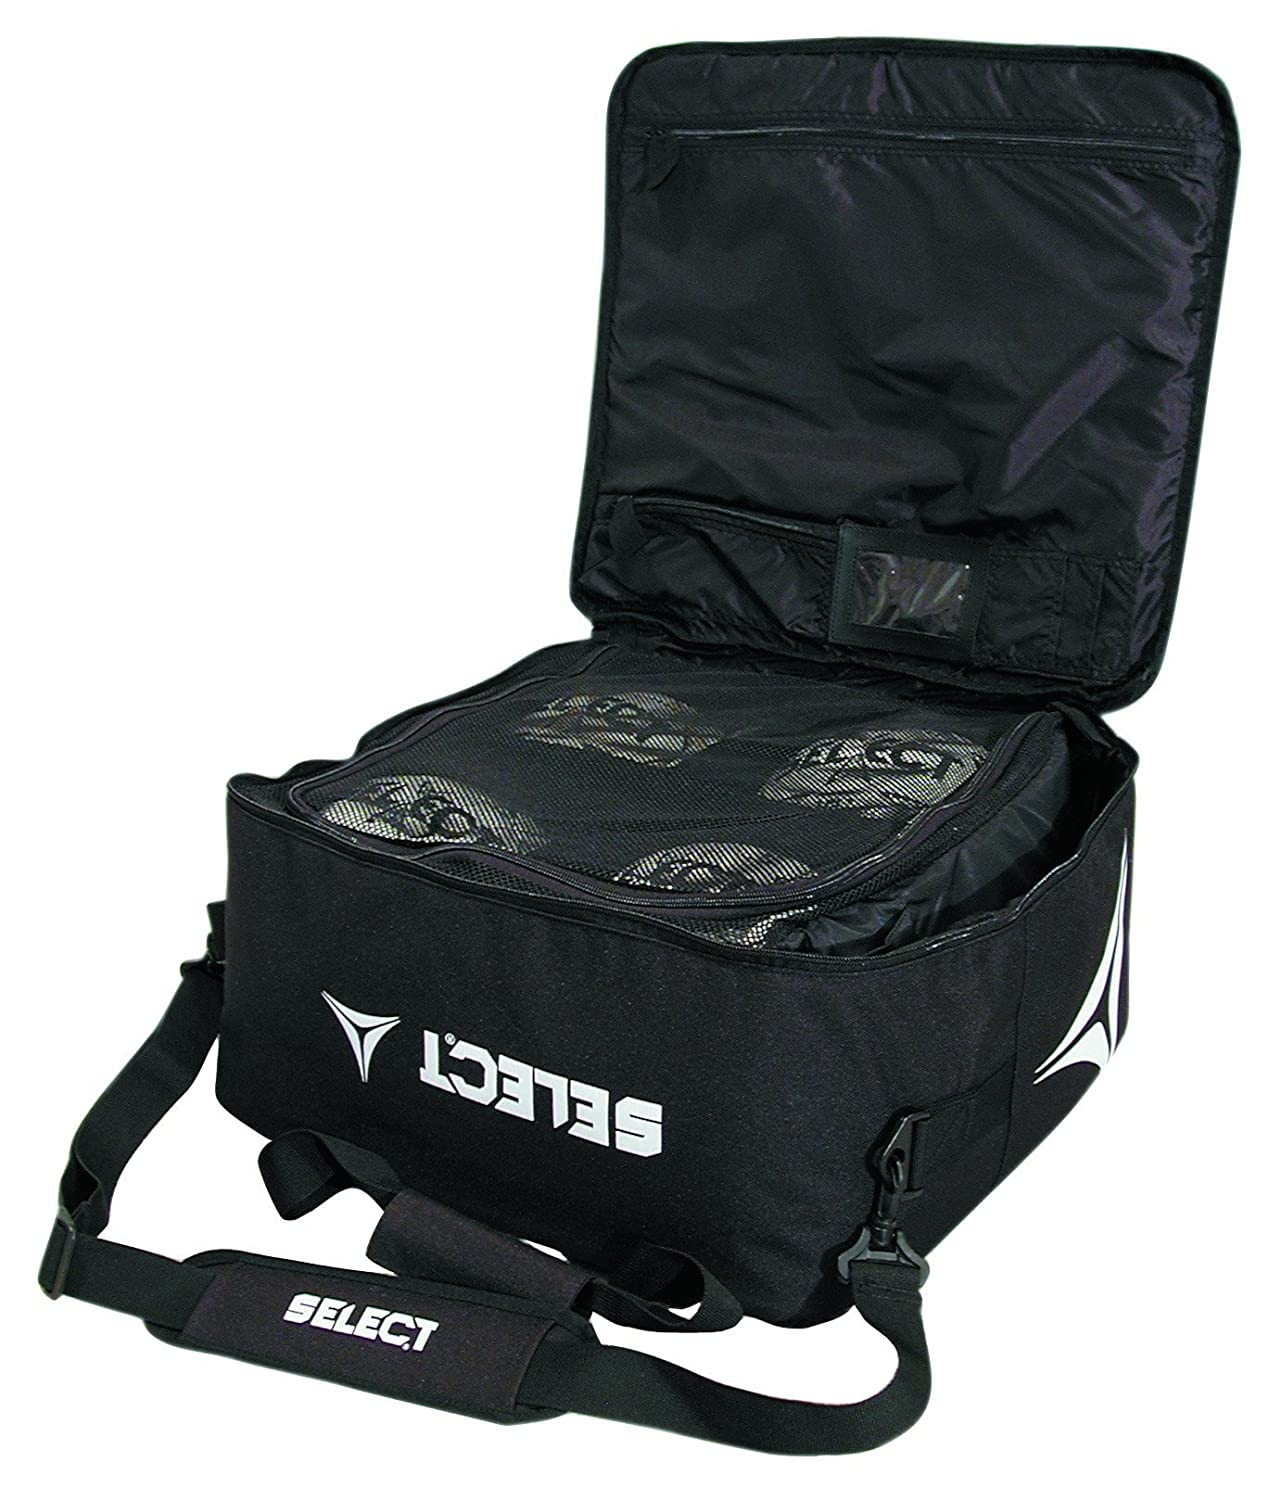 0aa61facc7 Amazon.com : Select Coaches Match Day Ball Bag : Soccer Ball Bags : Sports  & Outdoors